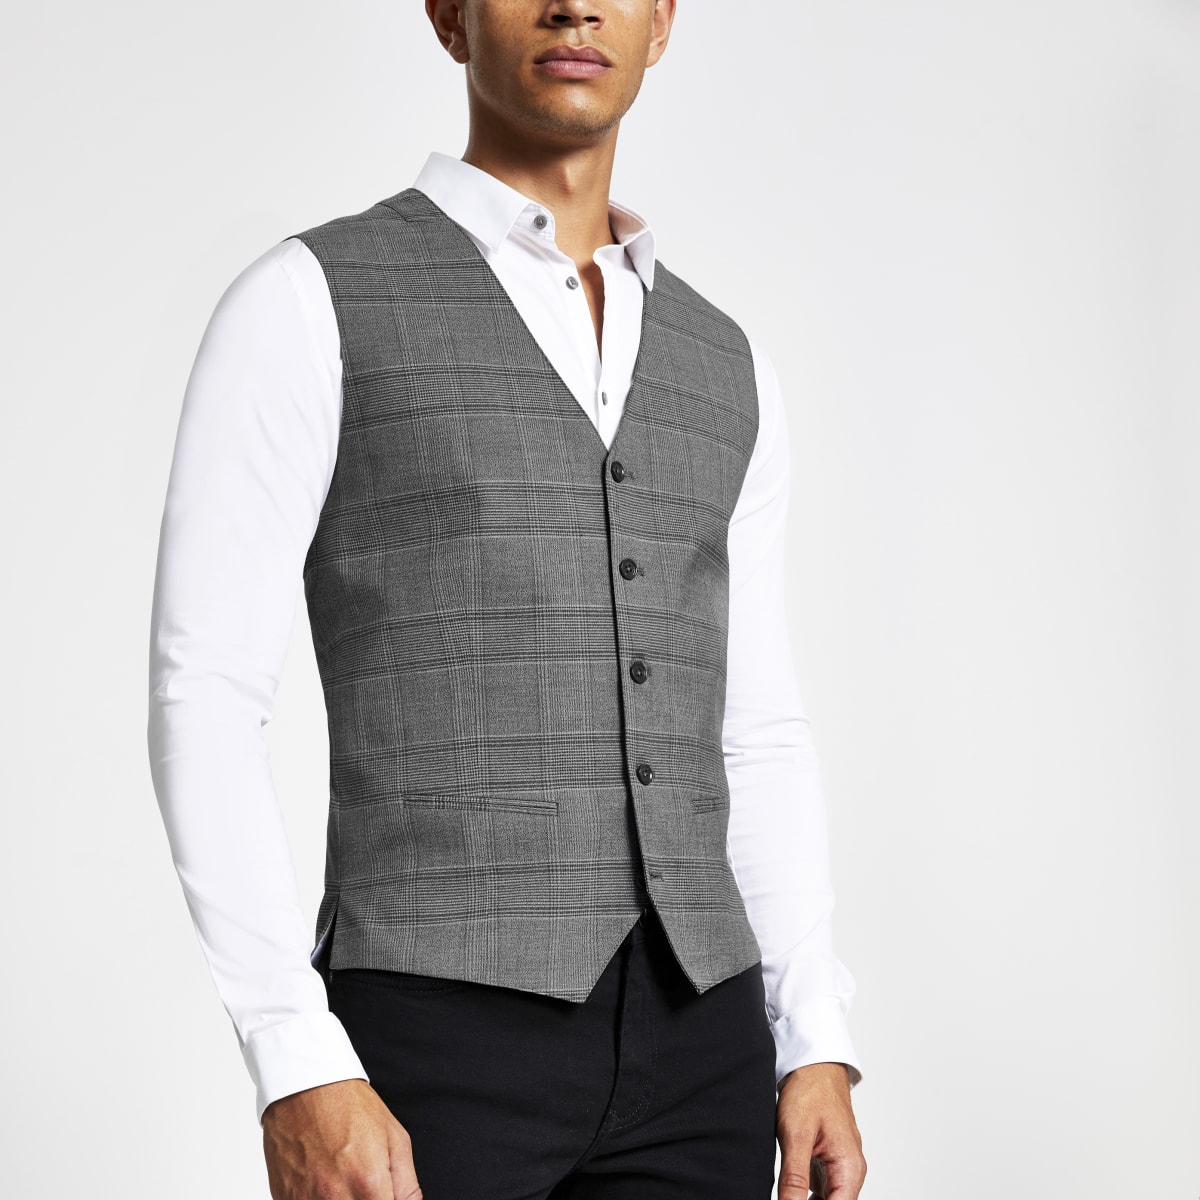 Jack and Jones grey check waistcoat